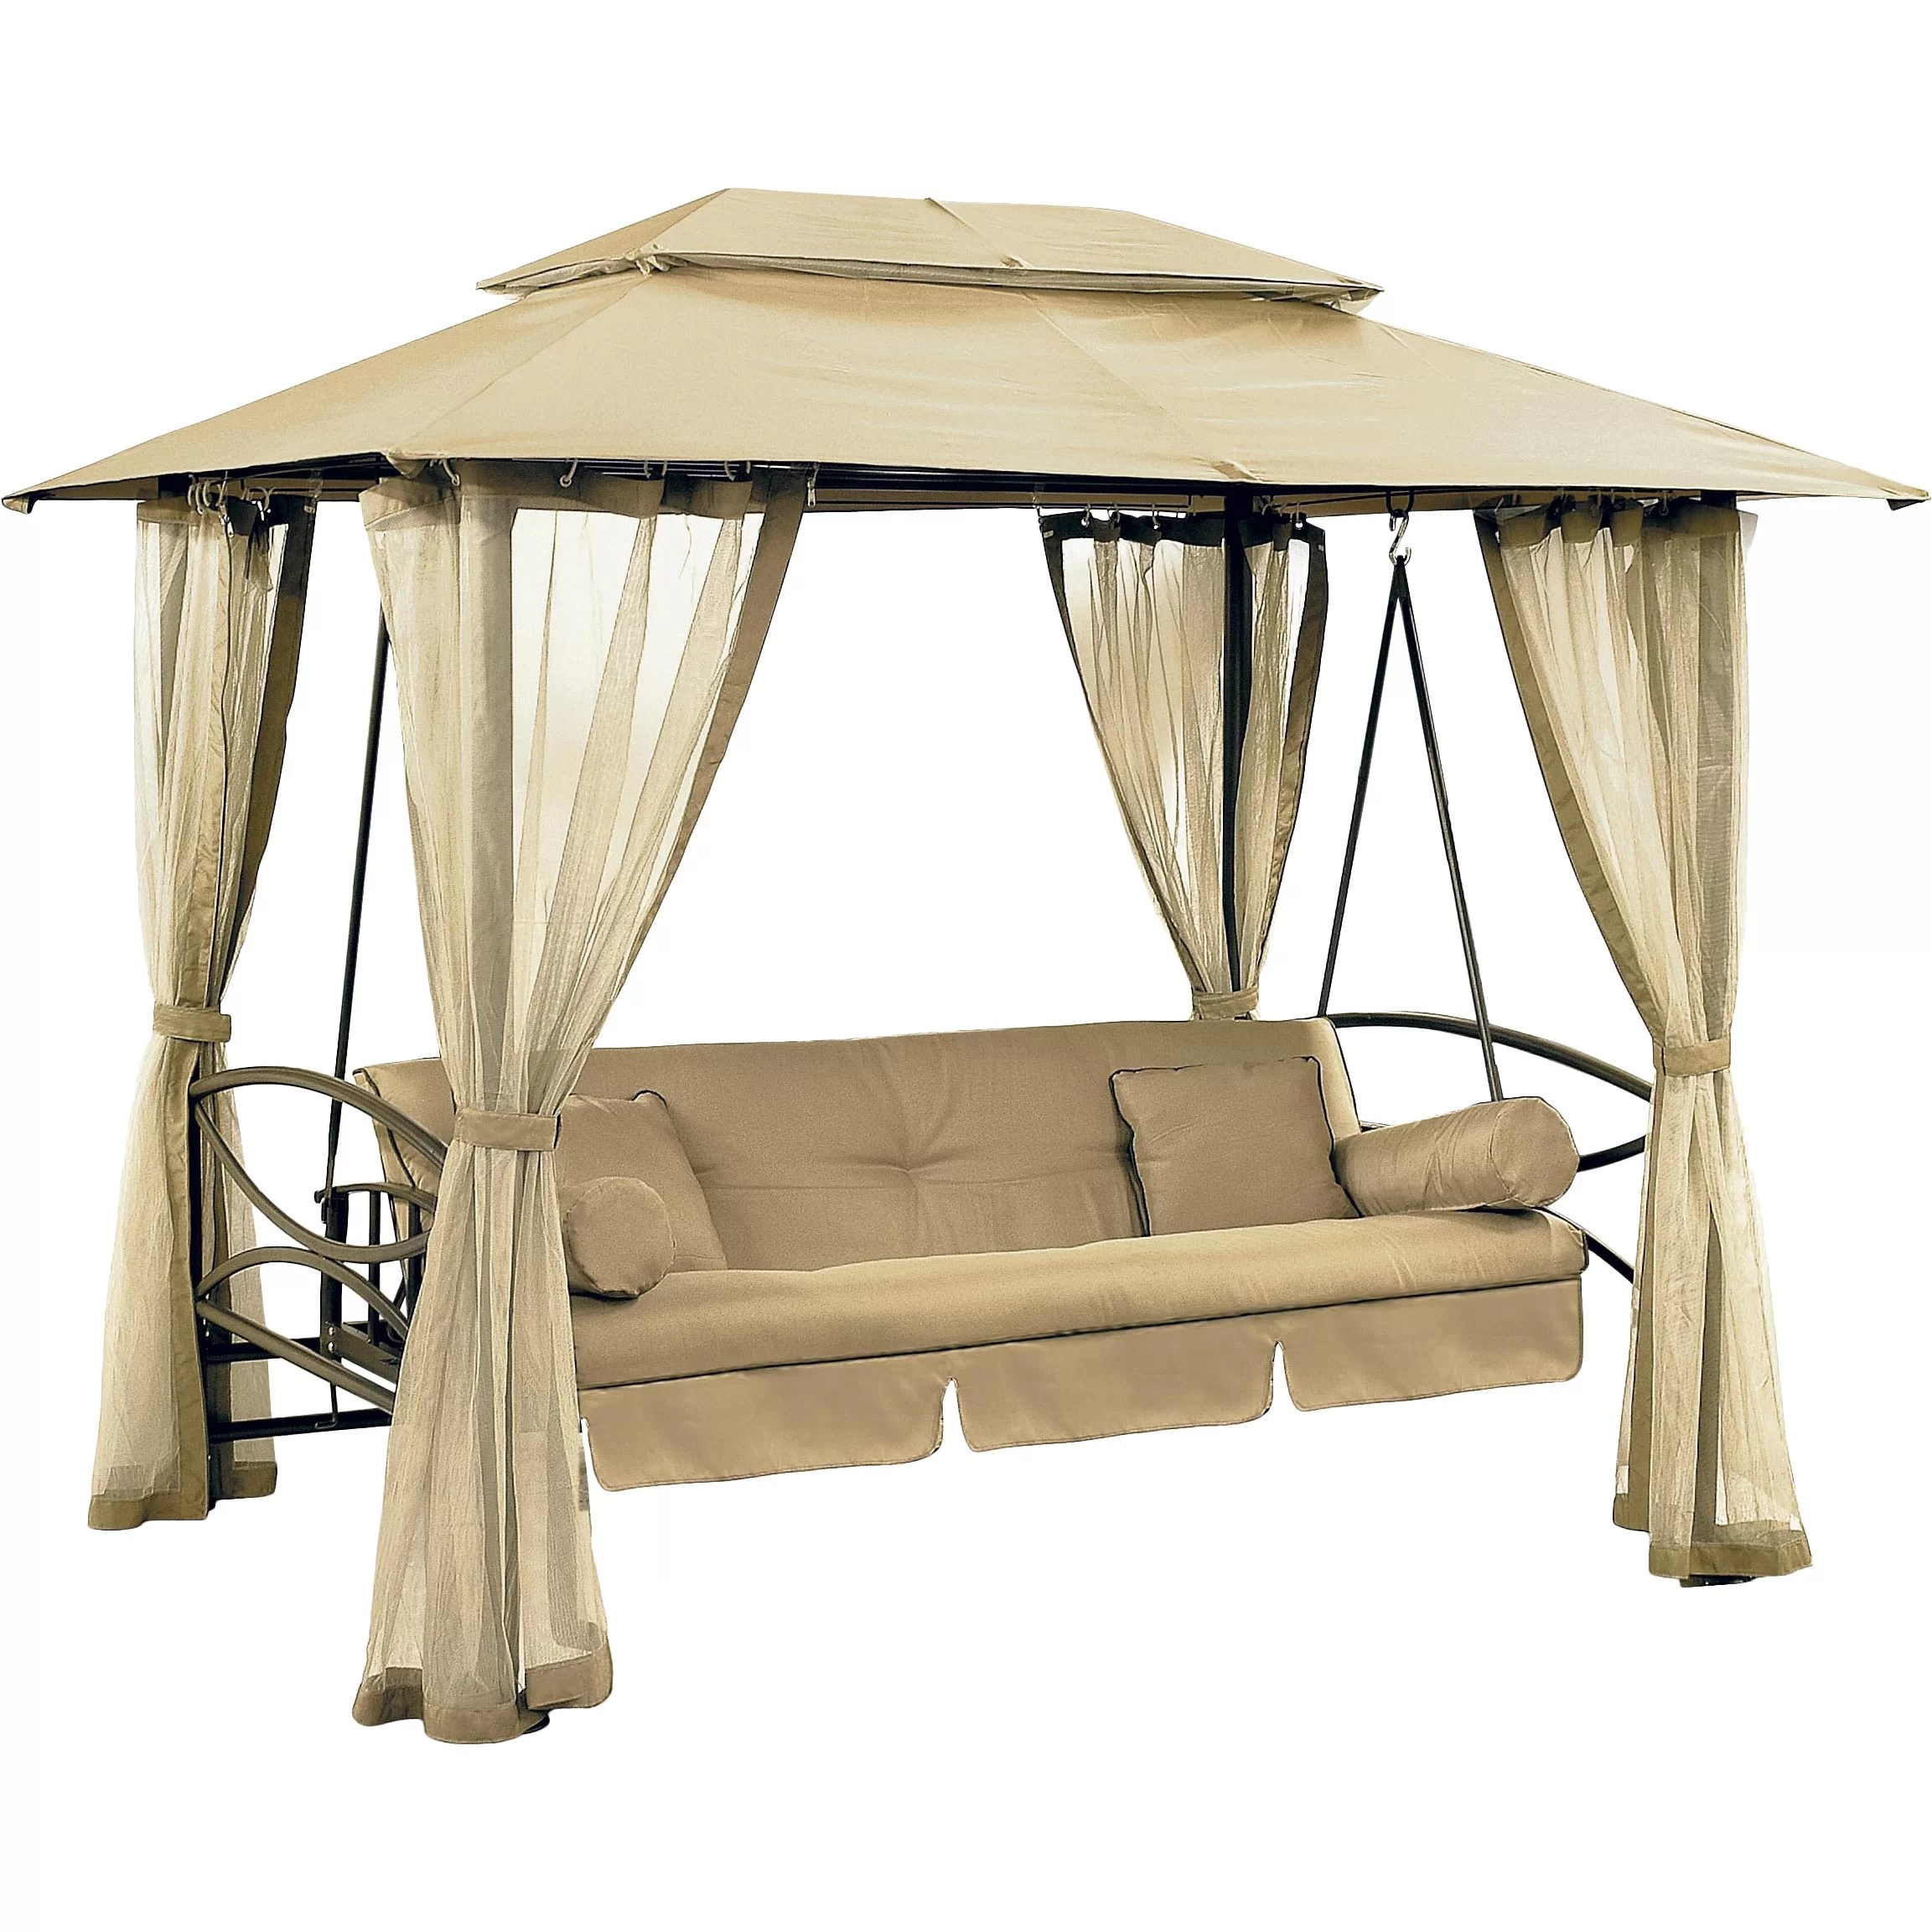 """SunTime Outdoor Living Luxor 7'9"""" H x 7'7"""" W x 6'7"""" D ... on Suntime Outdoor Living id=38465"""